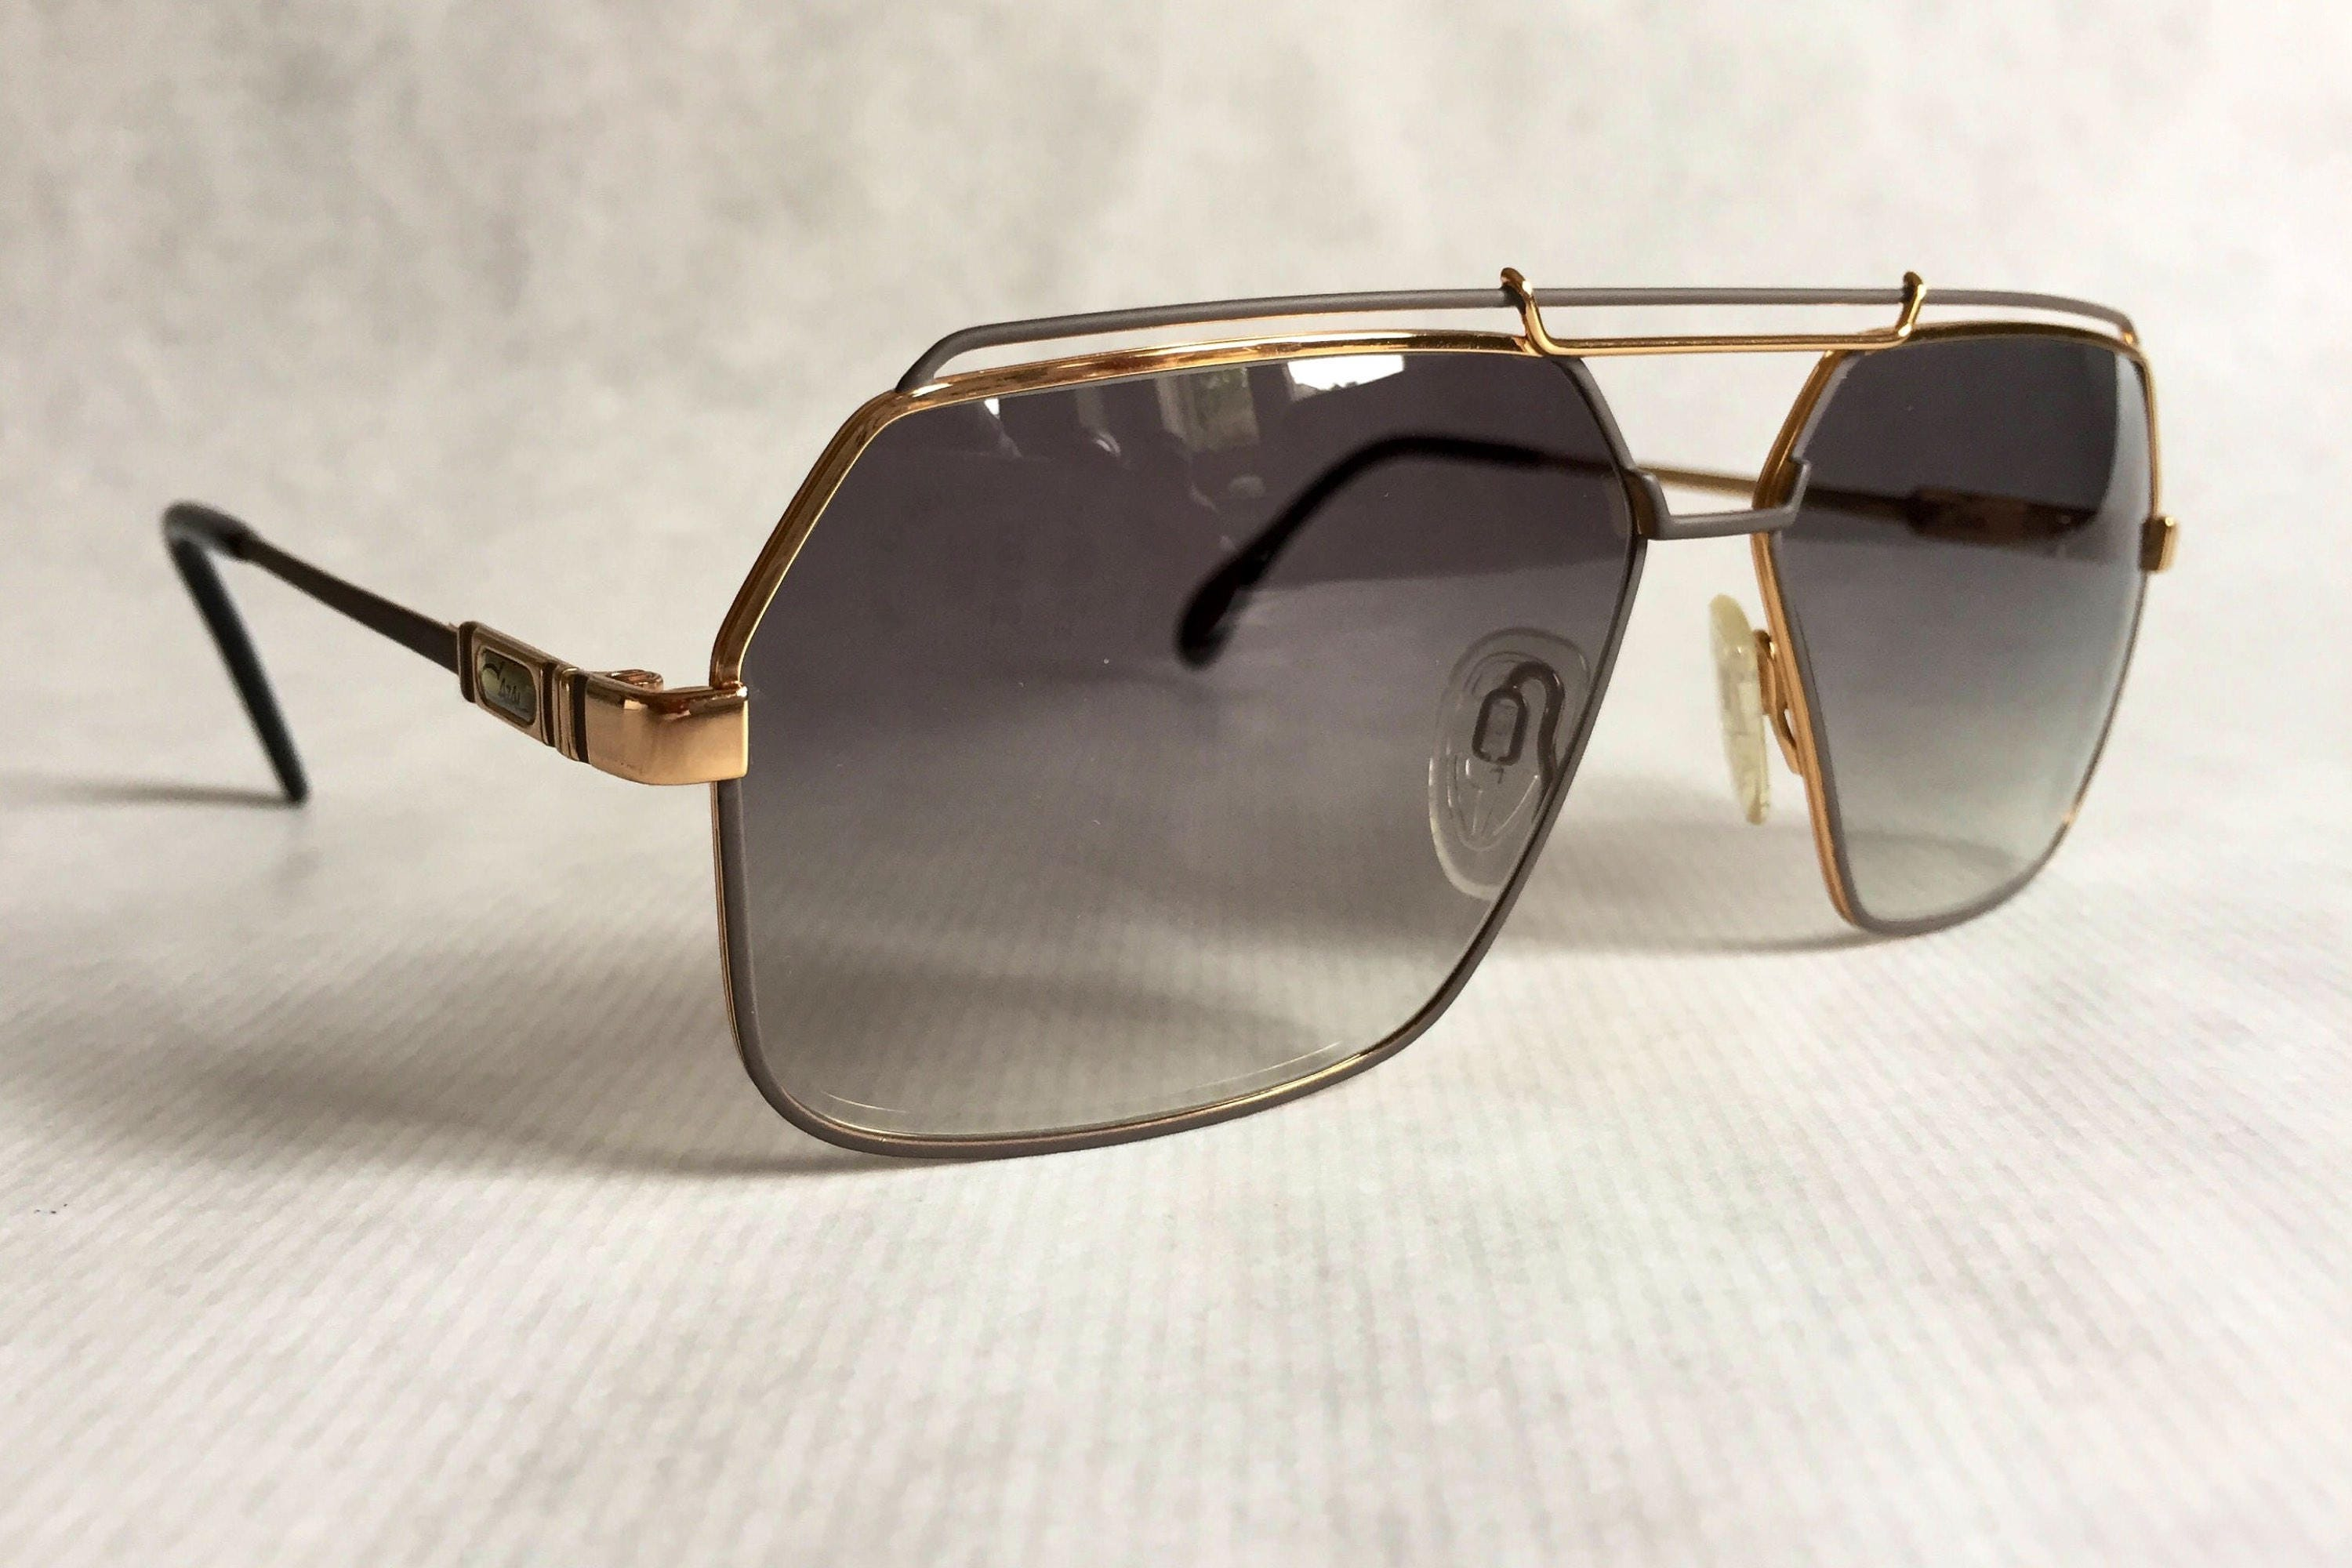 41656dc60c Cazal 734 Col 303 Vintage Sunglasses Made in West Germany New Old Stock